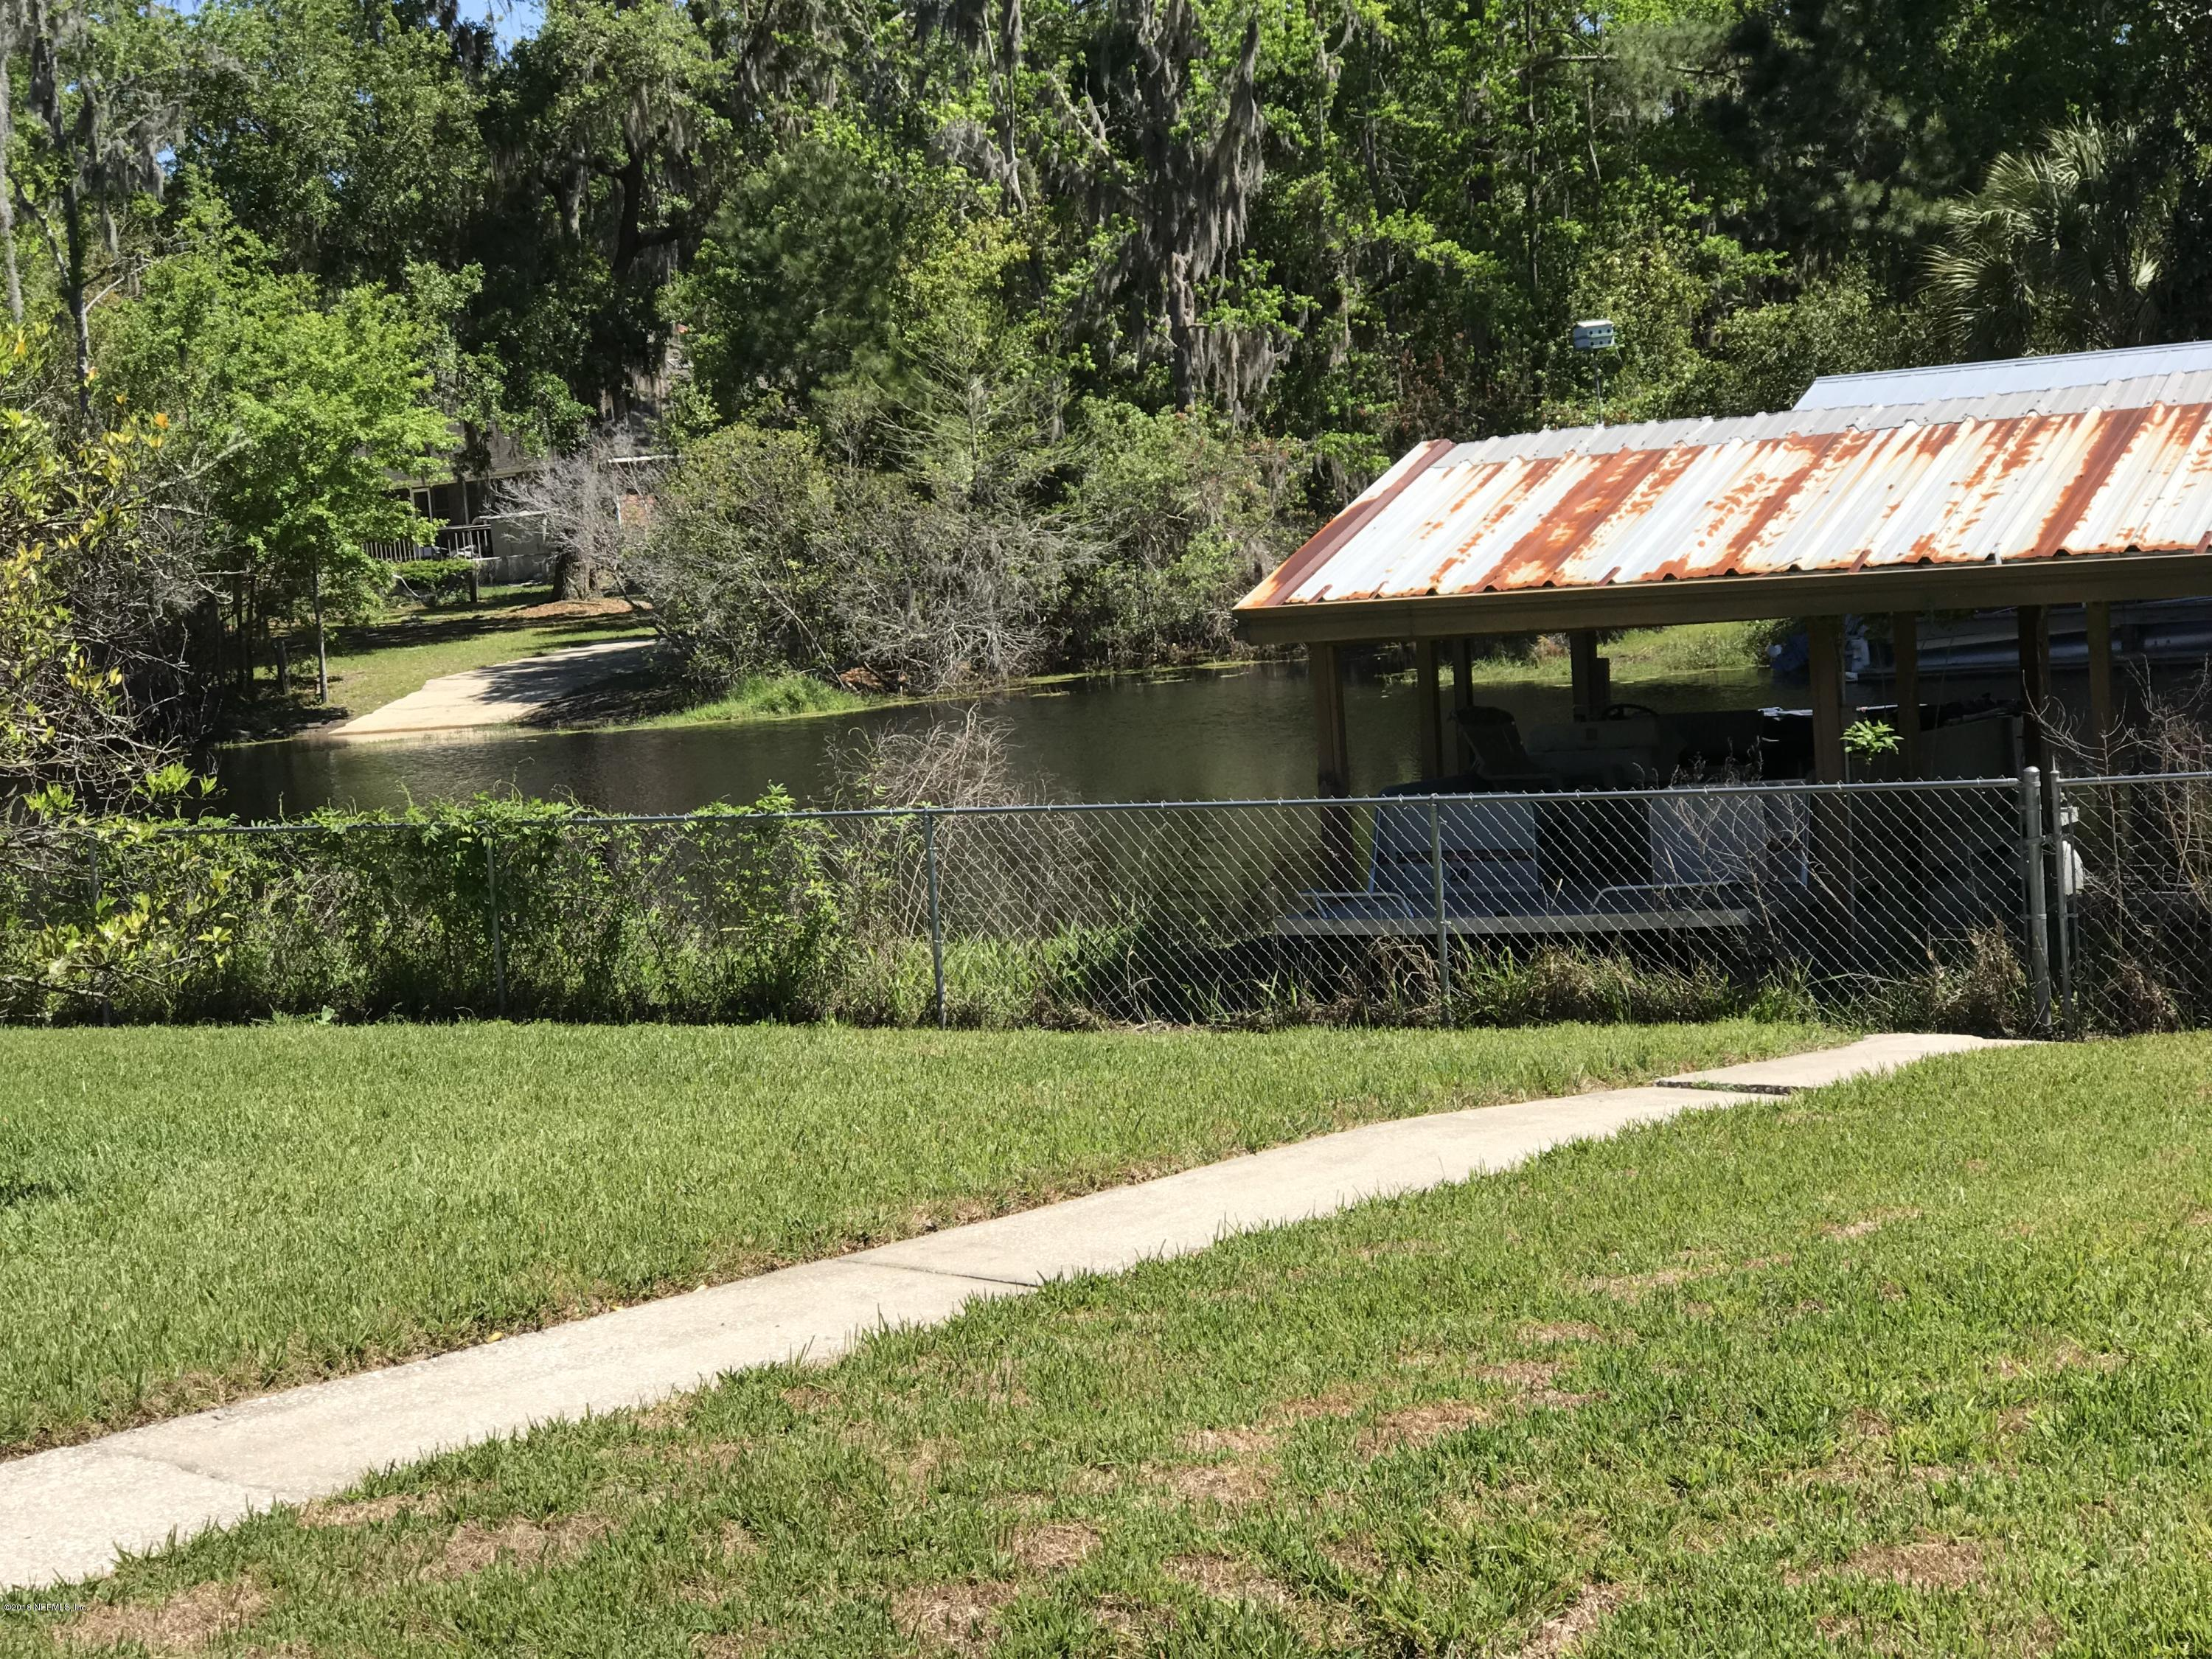 559 5TH, MELROSE, FLORIDA 32666, 3 Bedrooms Bedrooms, ,2 BathroomsBathrooms,Residential - single family,For sale,5TH,933821